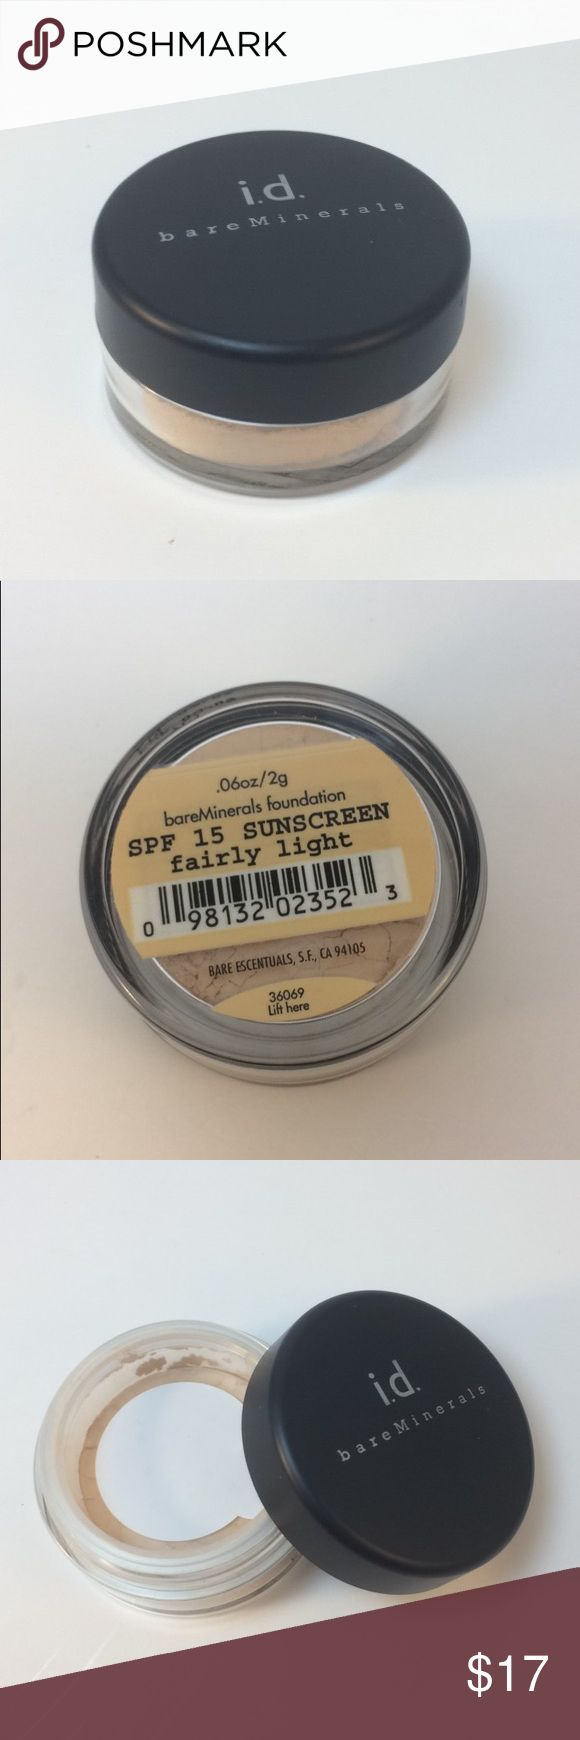 ♨️NEW ITEM♨️ bare Minerals SPF 15 Sunscreen Light SPF 15 Sunscreen Fairly Light #1 Mineral Foundation in 2016* Naturally luminous, lightweight, loose powder foundation provides sheer-to-full coverage that lasts for up to 8 hours.  This natural-looking foundation is made with just 5 mineral ingredients. Great for sensitive skin, and protects your face with broad spectrum SPF 15. This makeup is so pure that it won't cause breakouts-even if you sleep in it. *10-Year Allure Best of Beauty Hall…